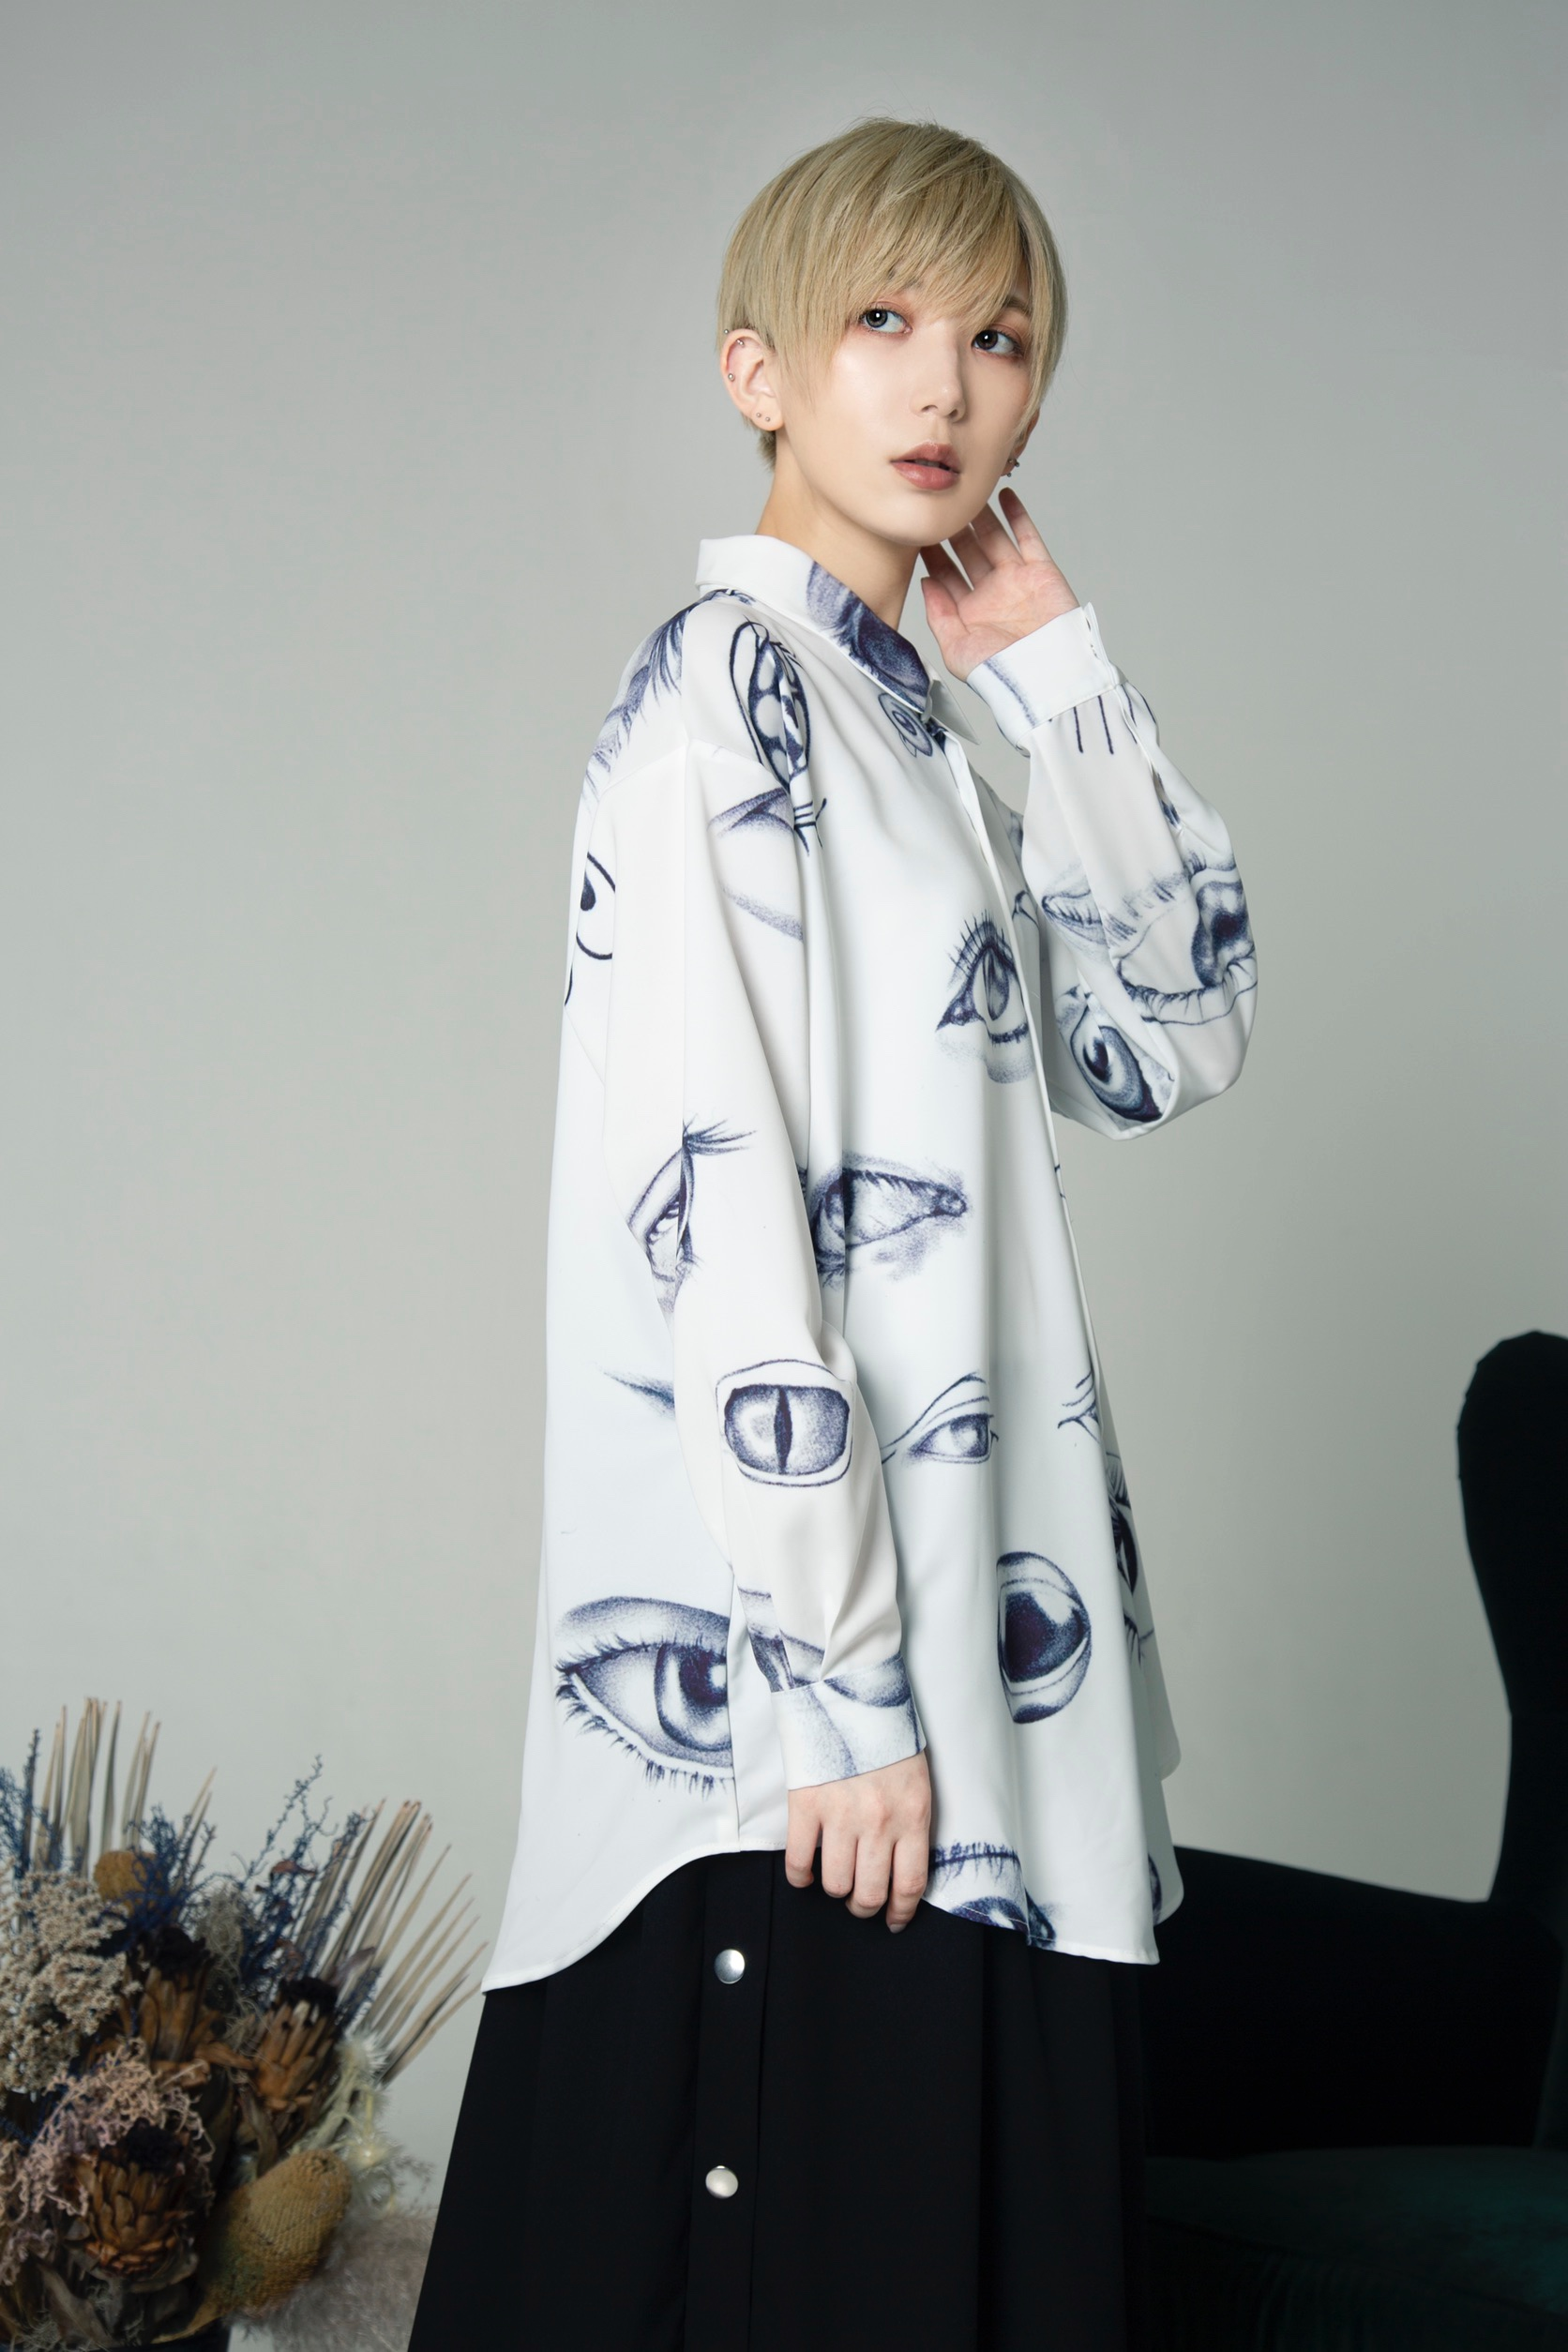 0658 6th collection【 The under eye 】× 光宗 薫 collection【 snail mouth 】